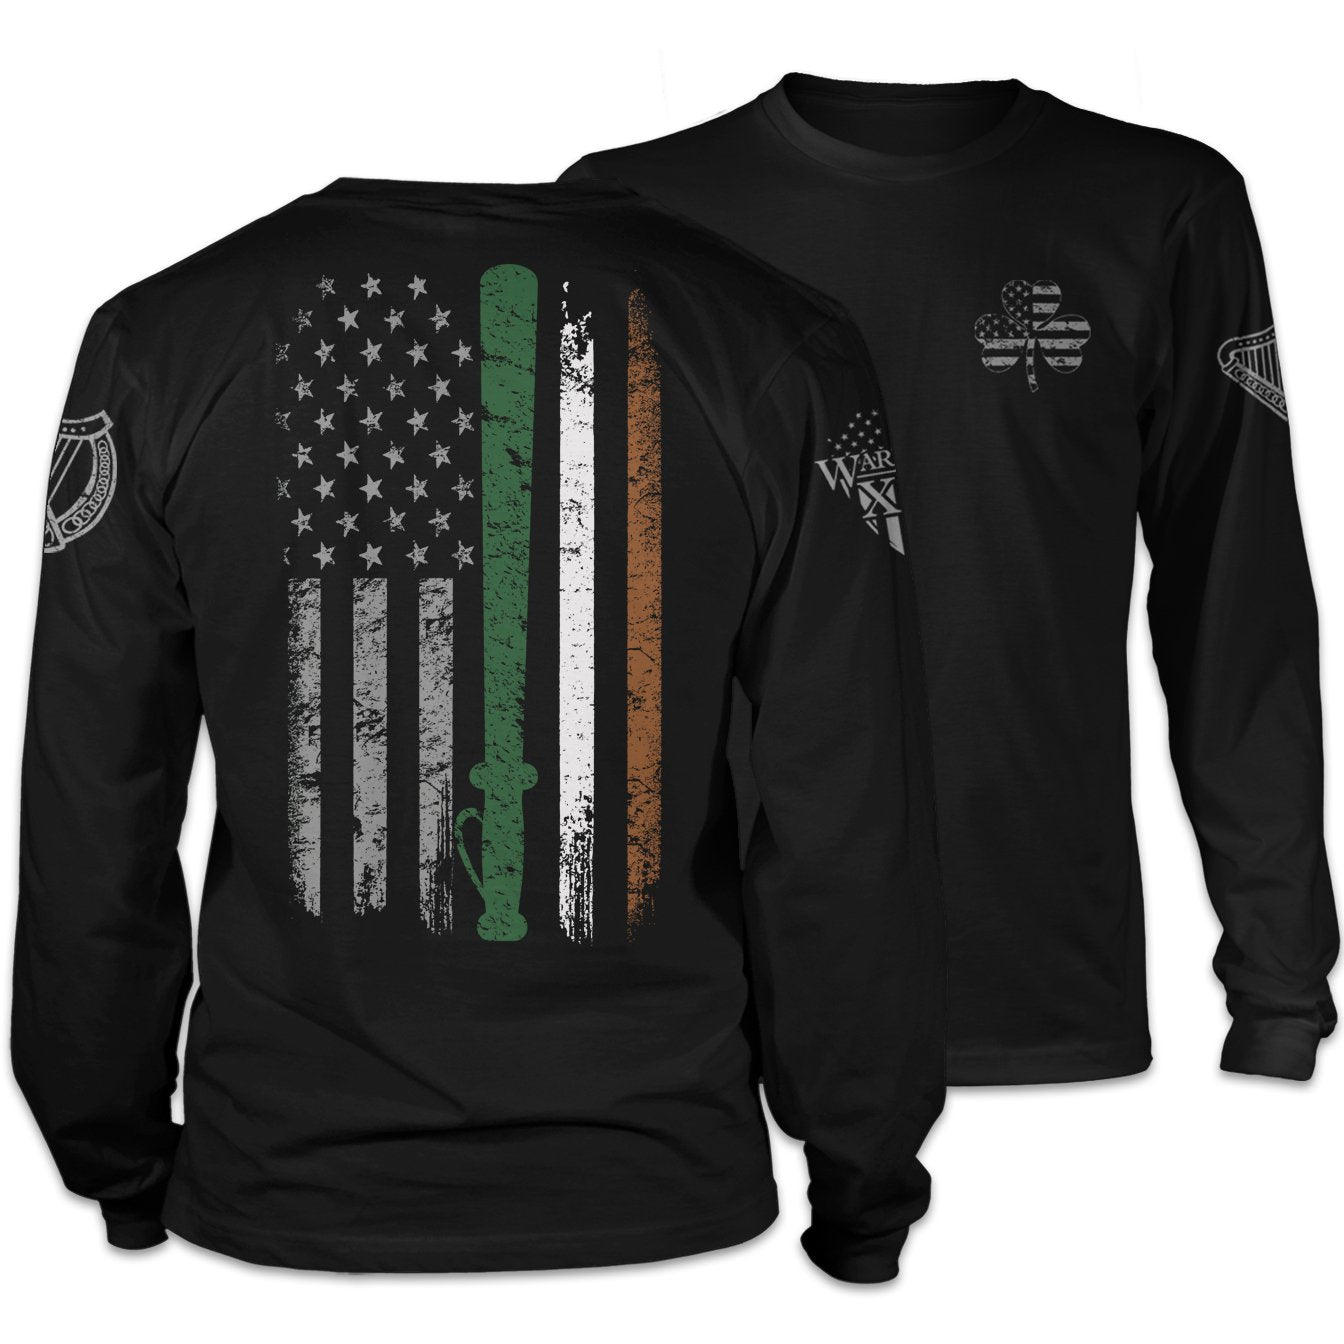 St. Patrick's Irish Police Flag Long Sleeve